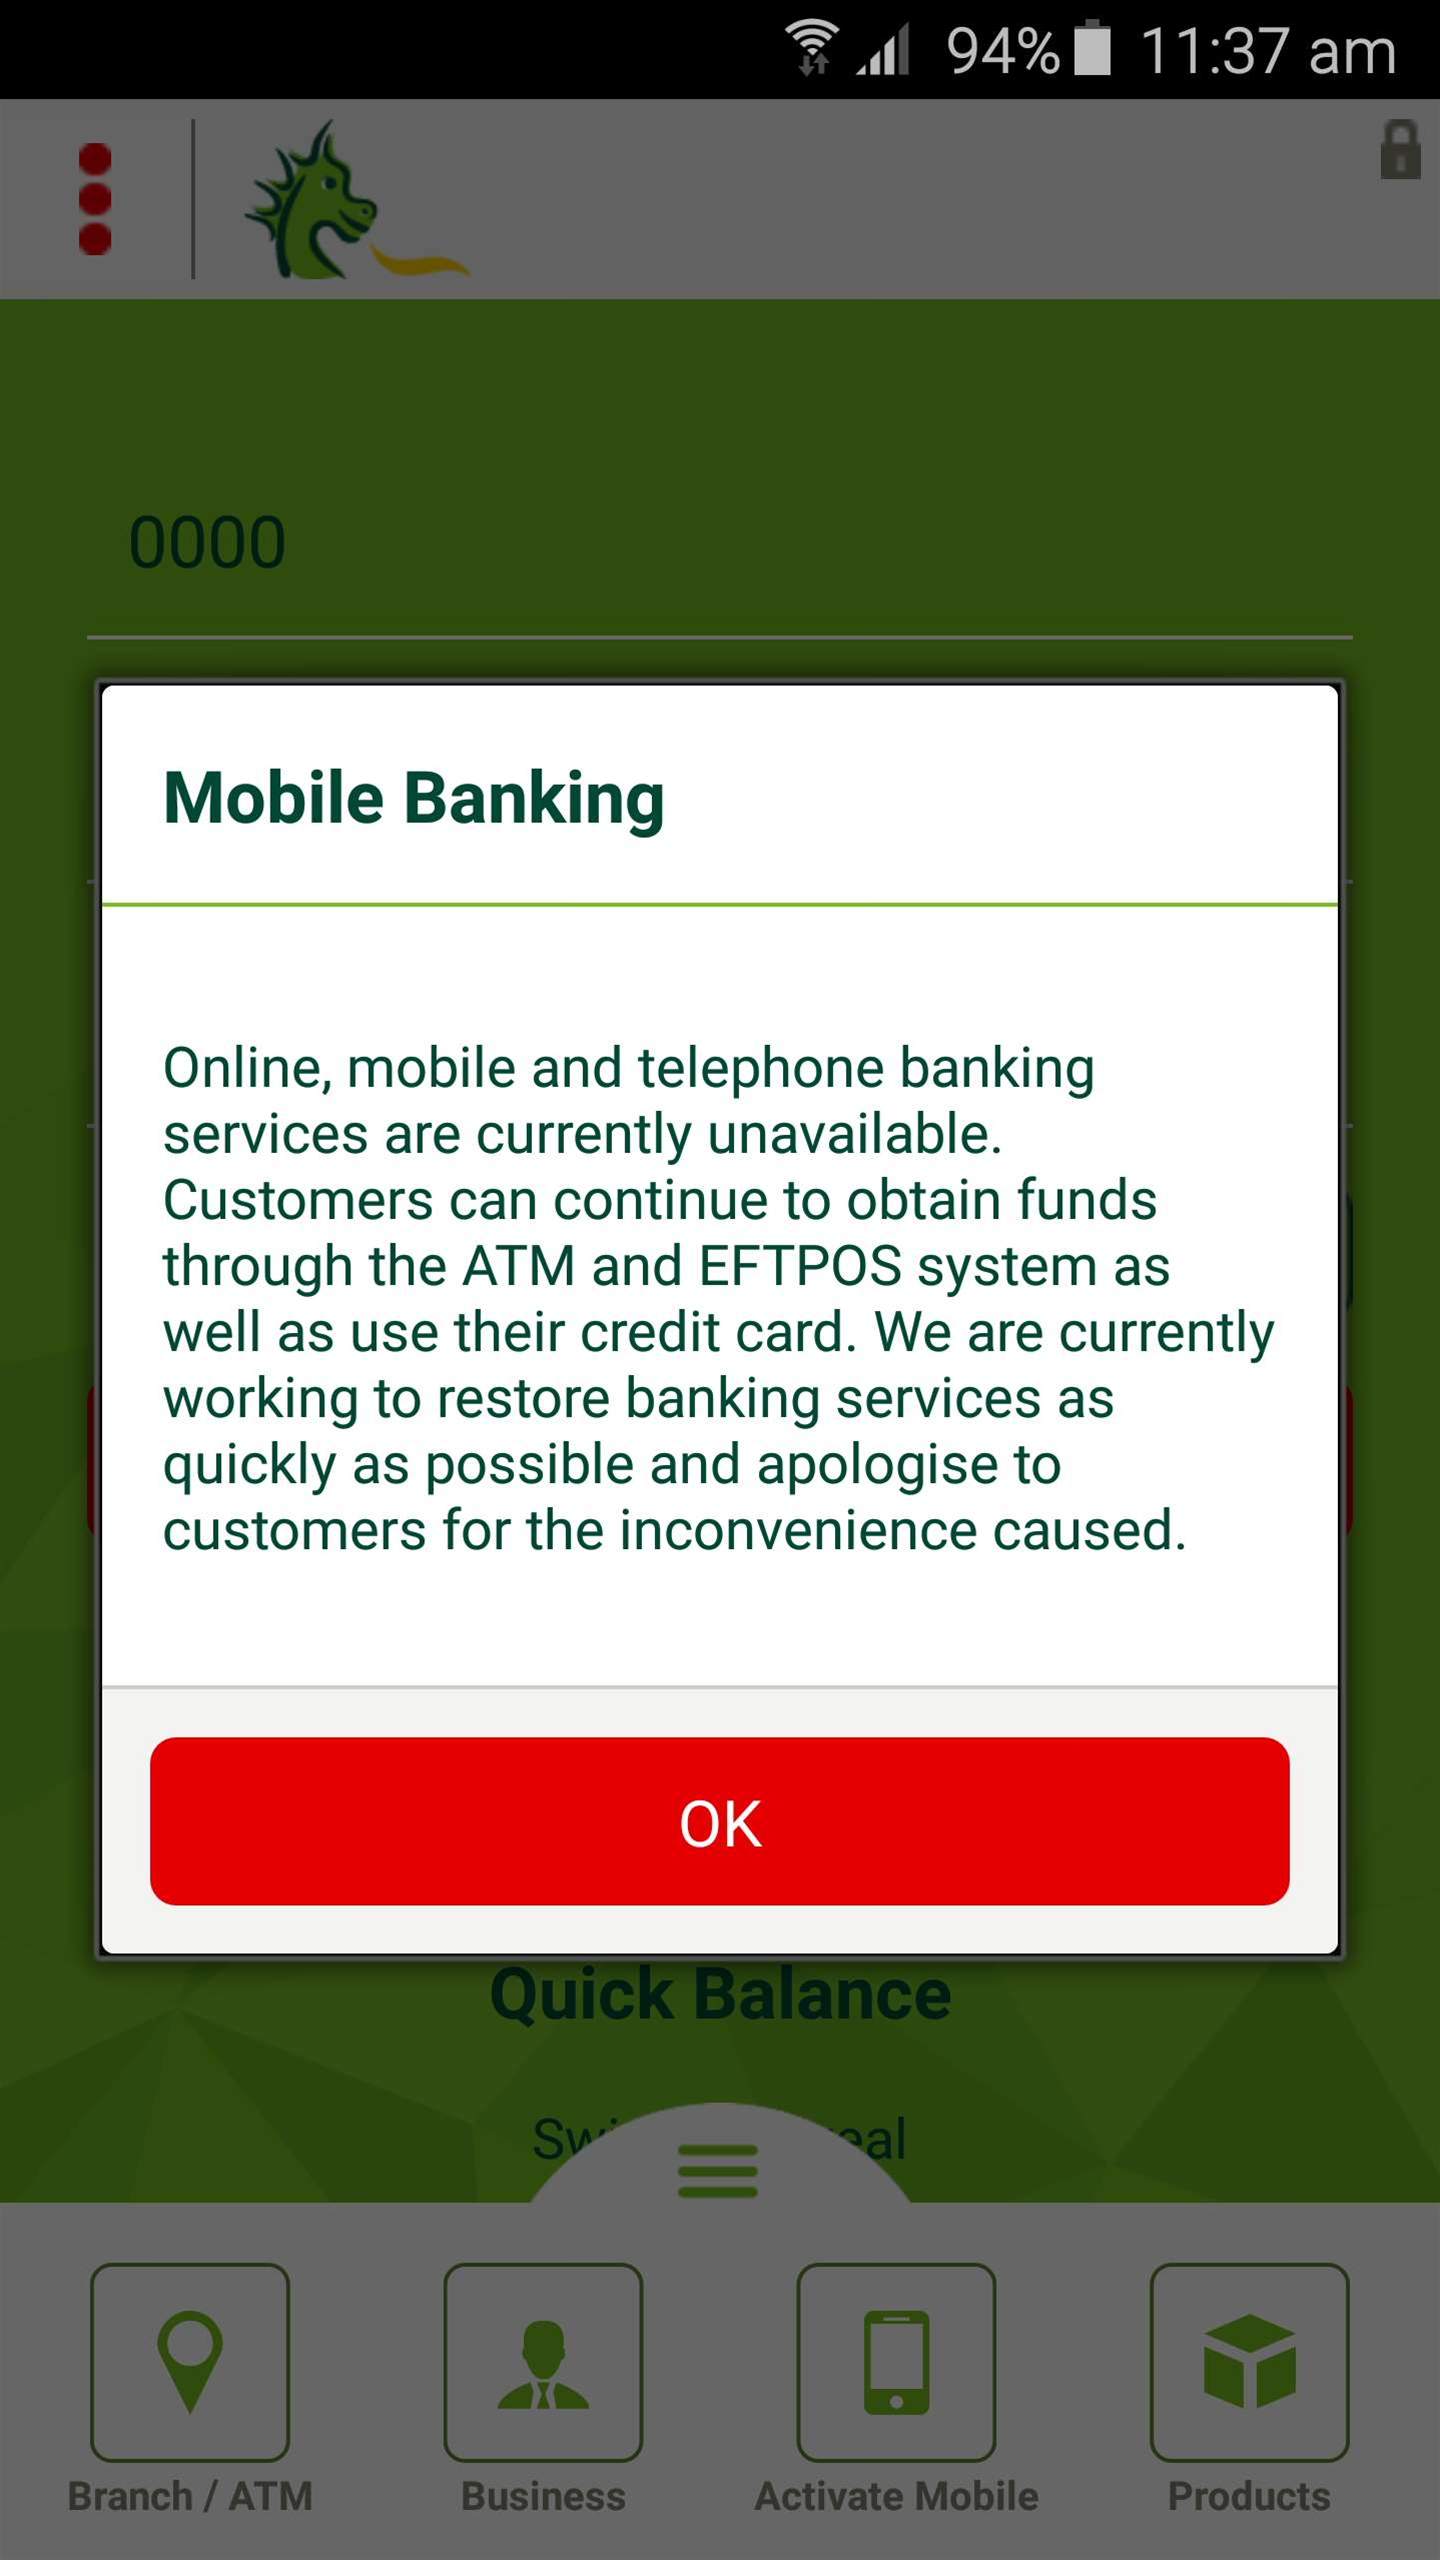 St George online banking goes down over long weekend